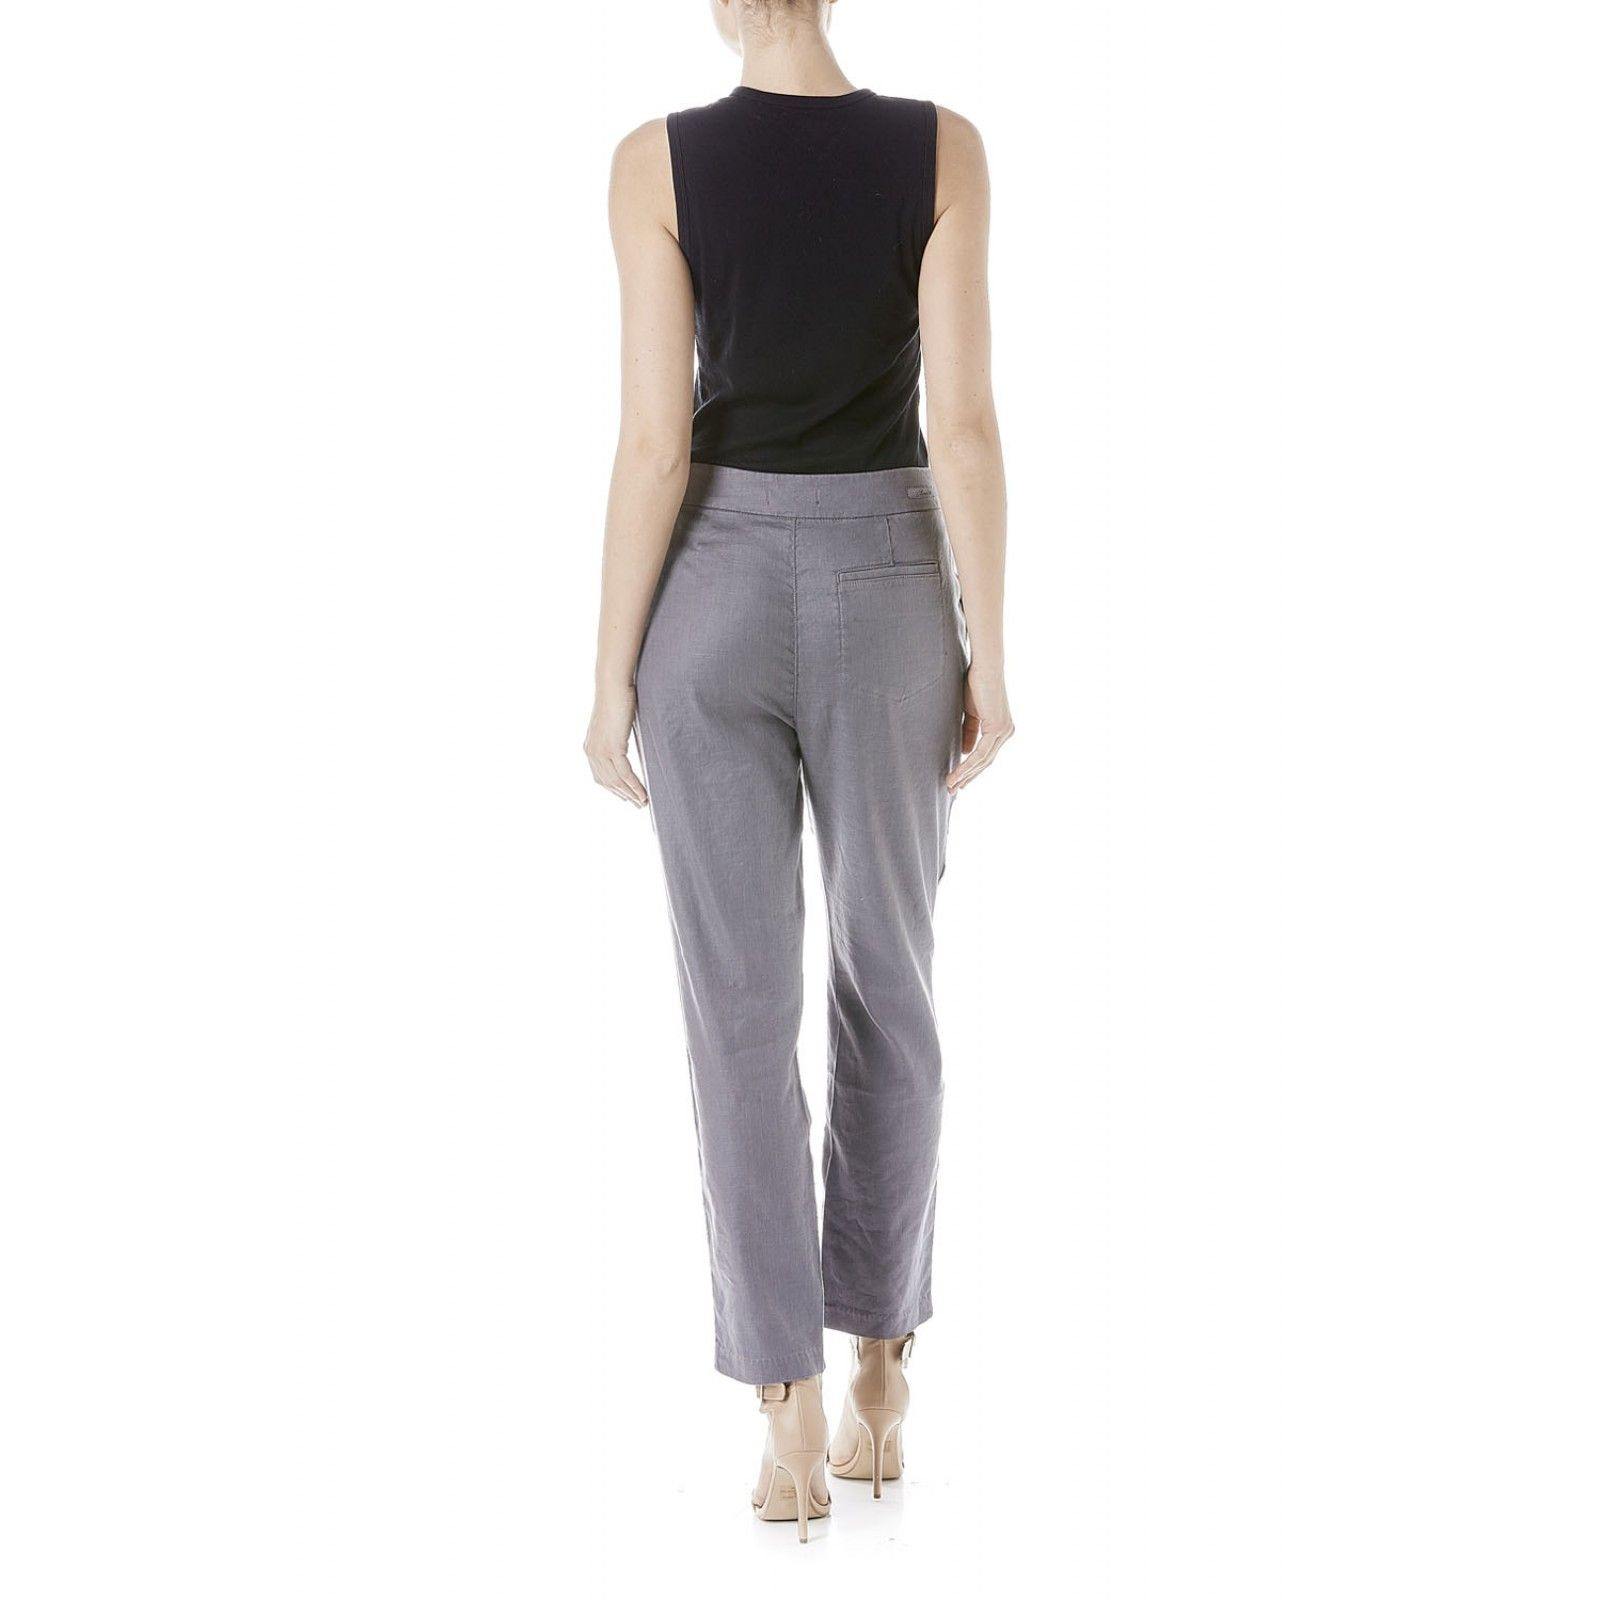 <p>Feminine high waisted trouser<br />Staggered front pleats at the waist<br />Attached tie belt<br />Slanted front pockets<br />Single back patch pocket<br />Relaxed straight leg</p>